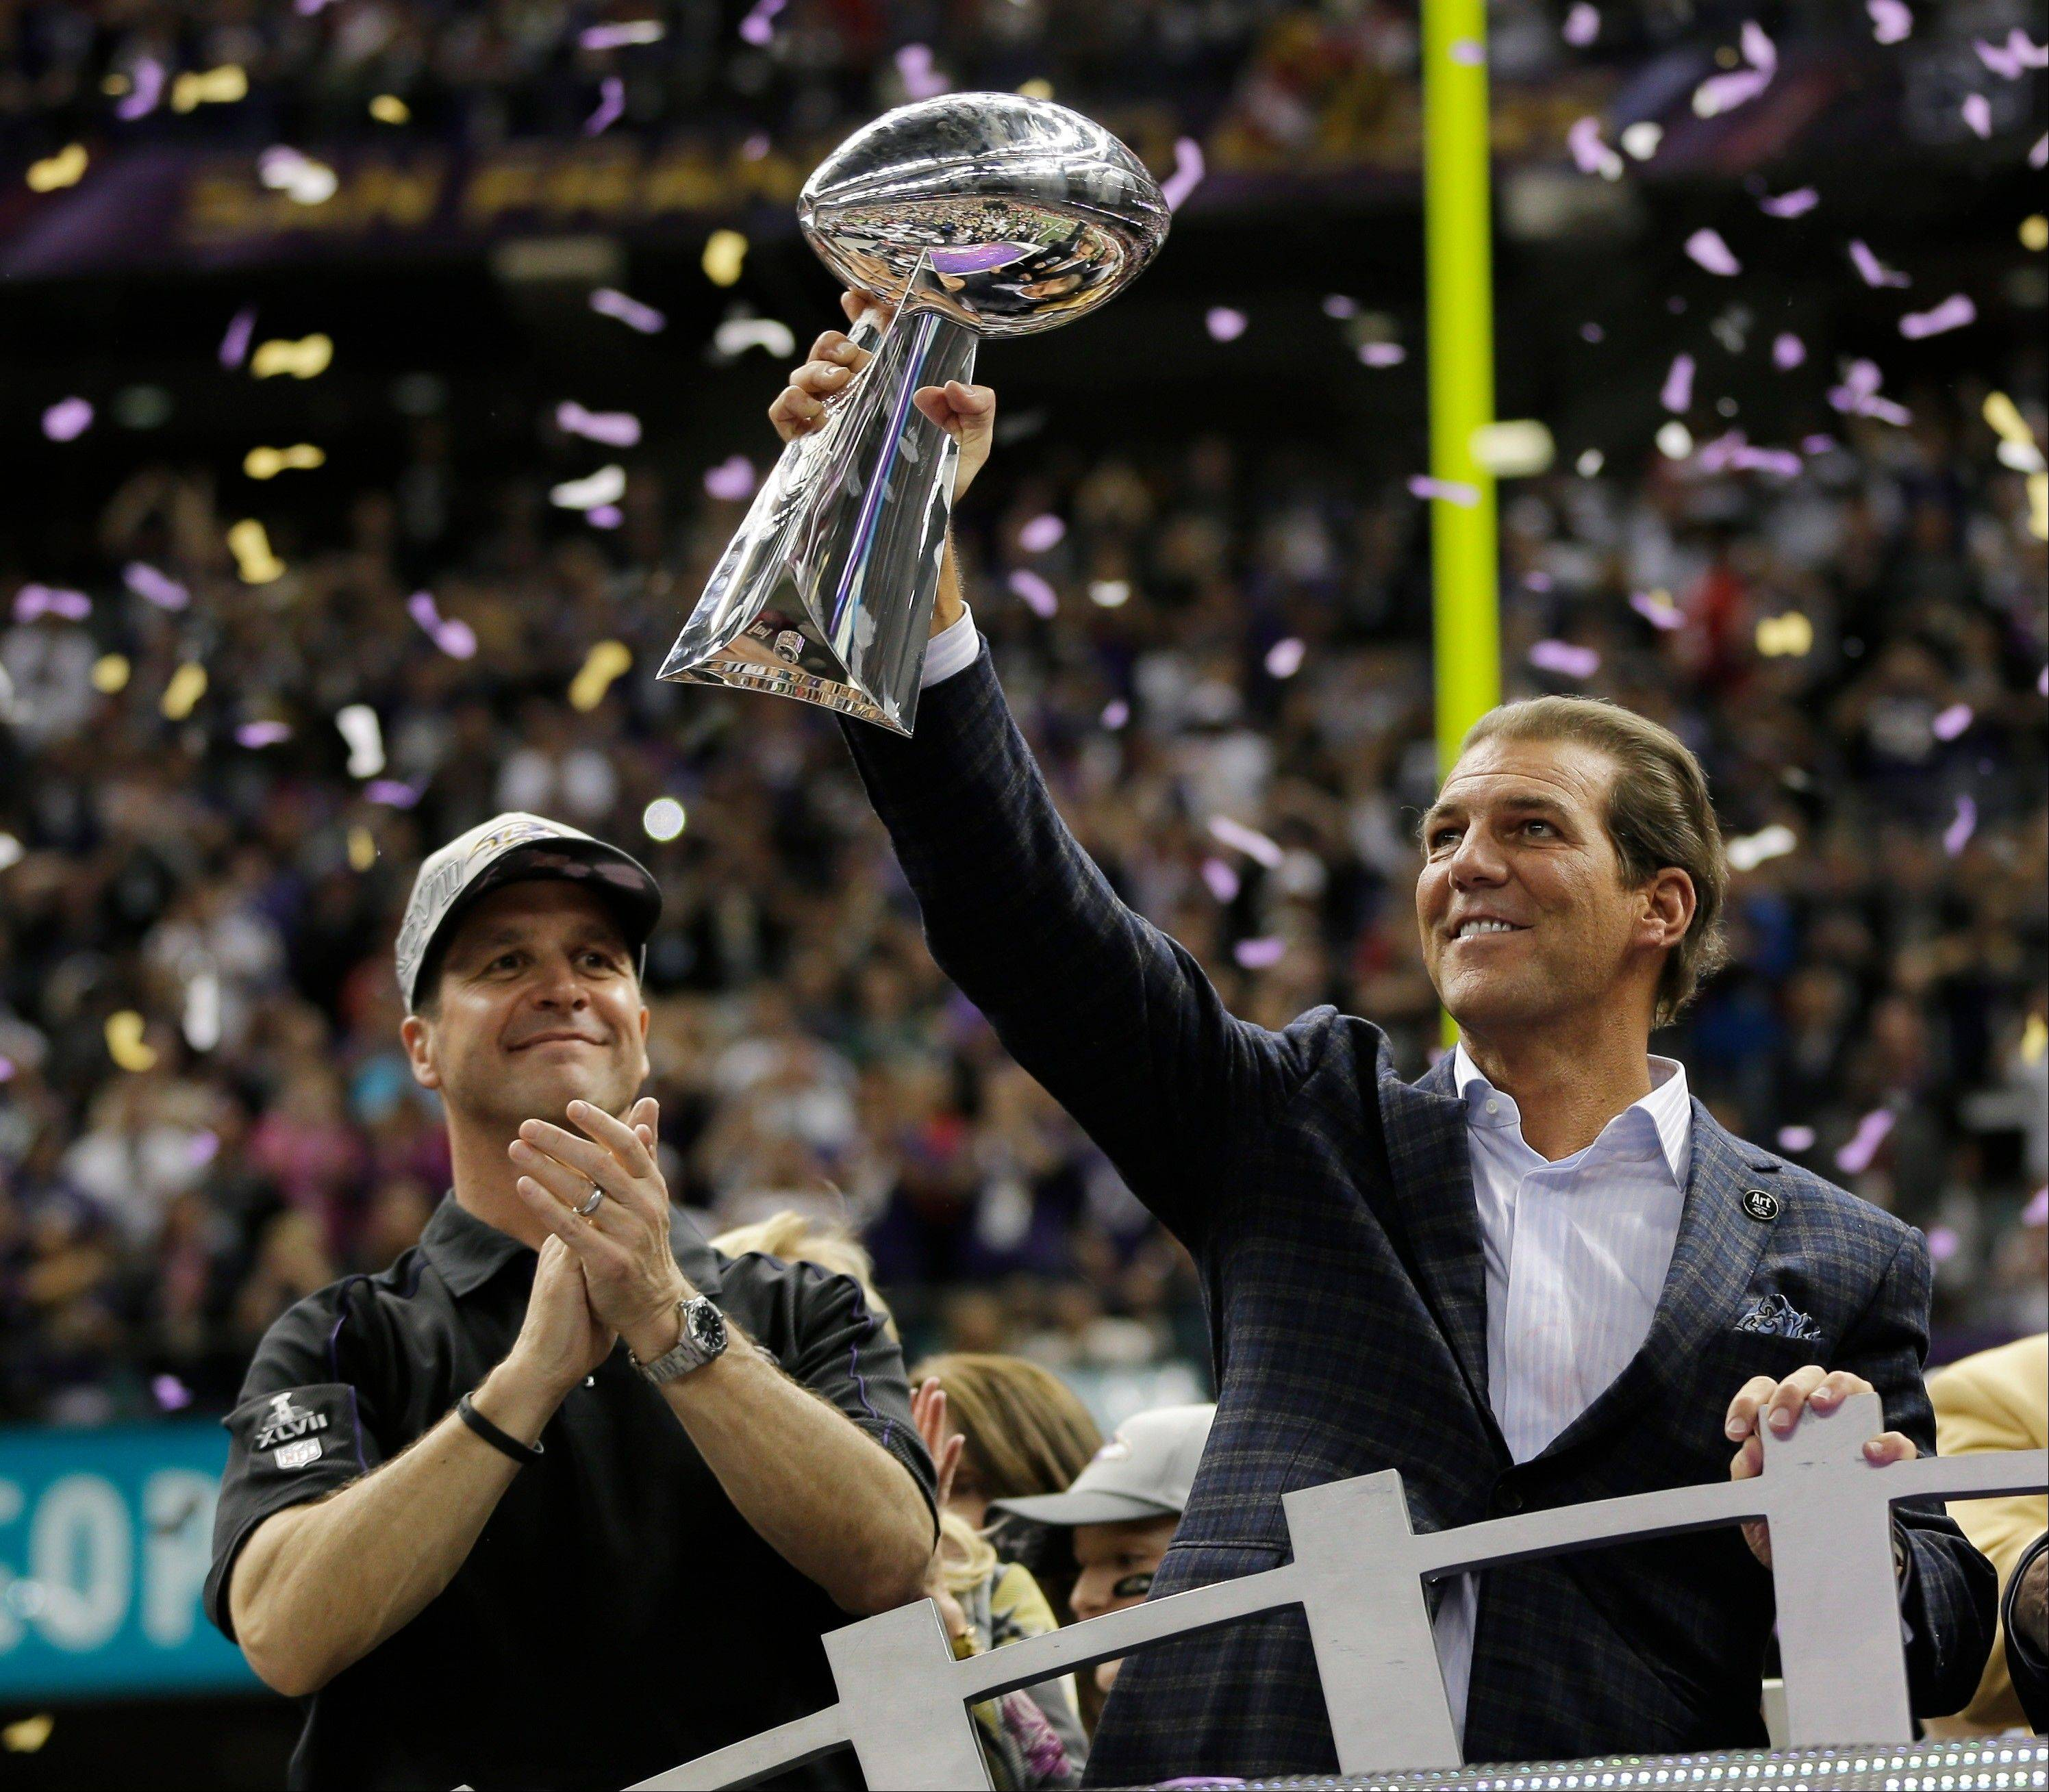 Baltimore Ravens owner Stephen J. Bisciotti holds up the Vince Lombardi Trophy after the team's 34-31 win against the San Francisco 49ers in Super Bowl XLVII.